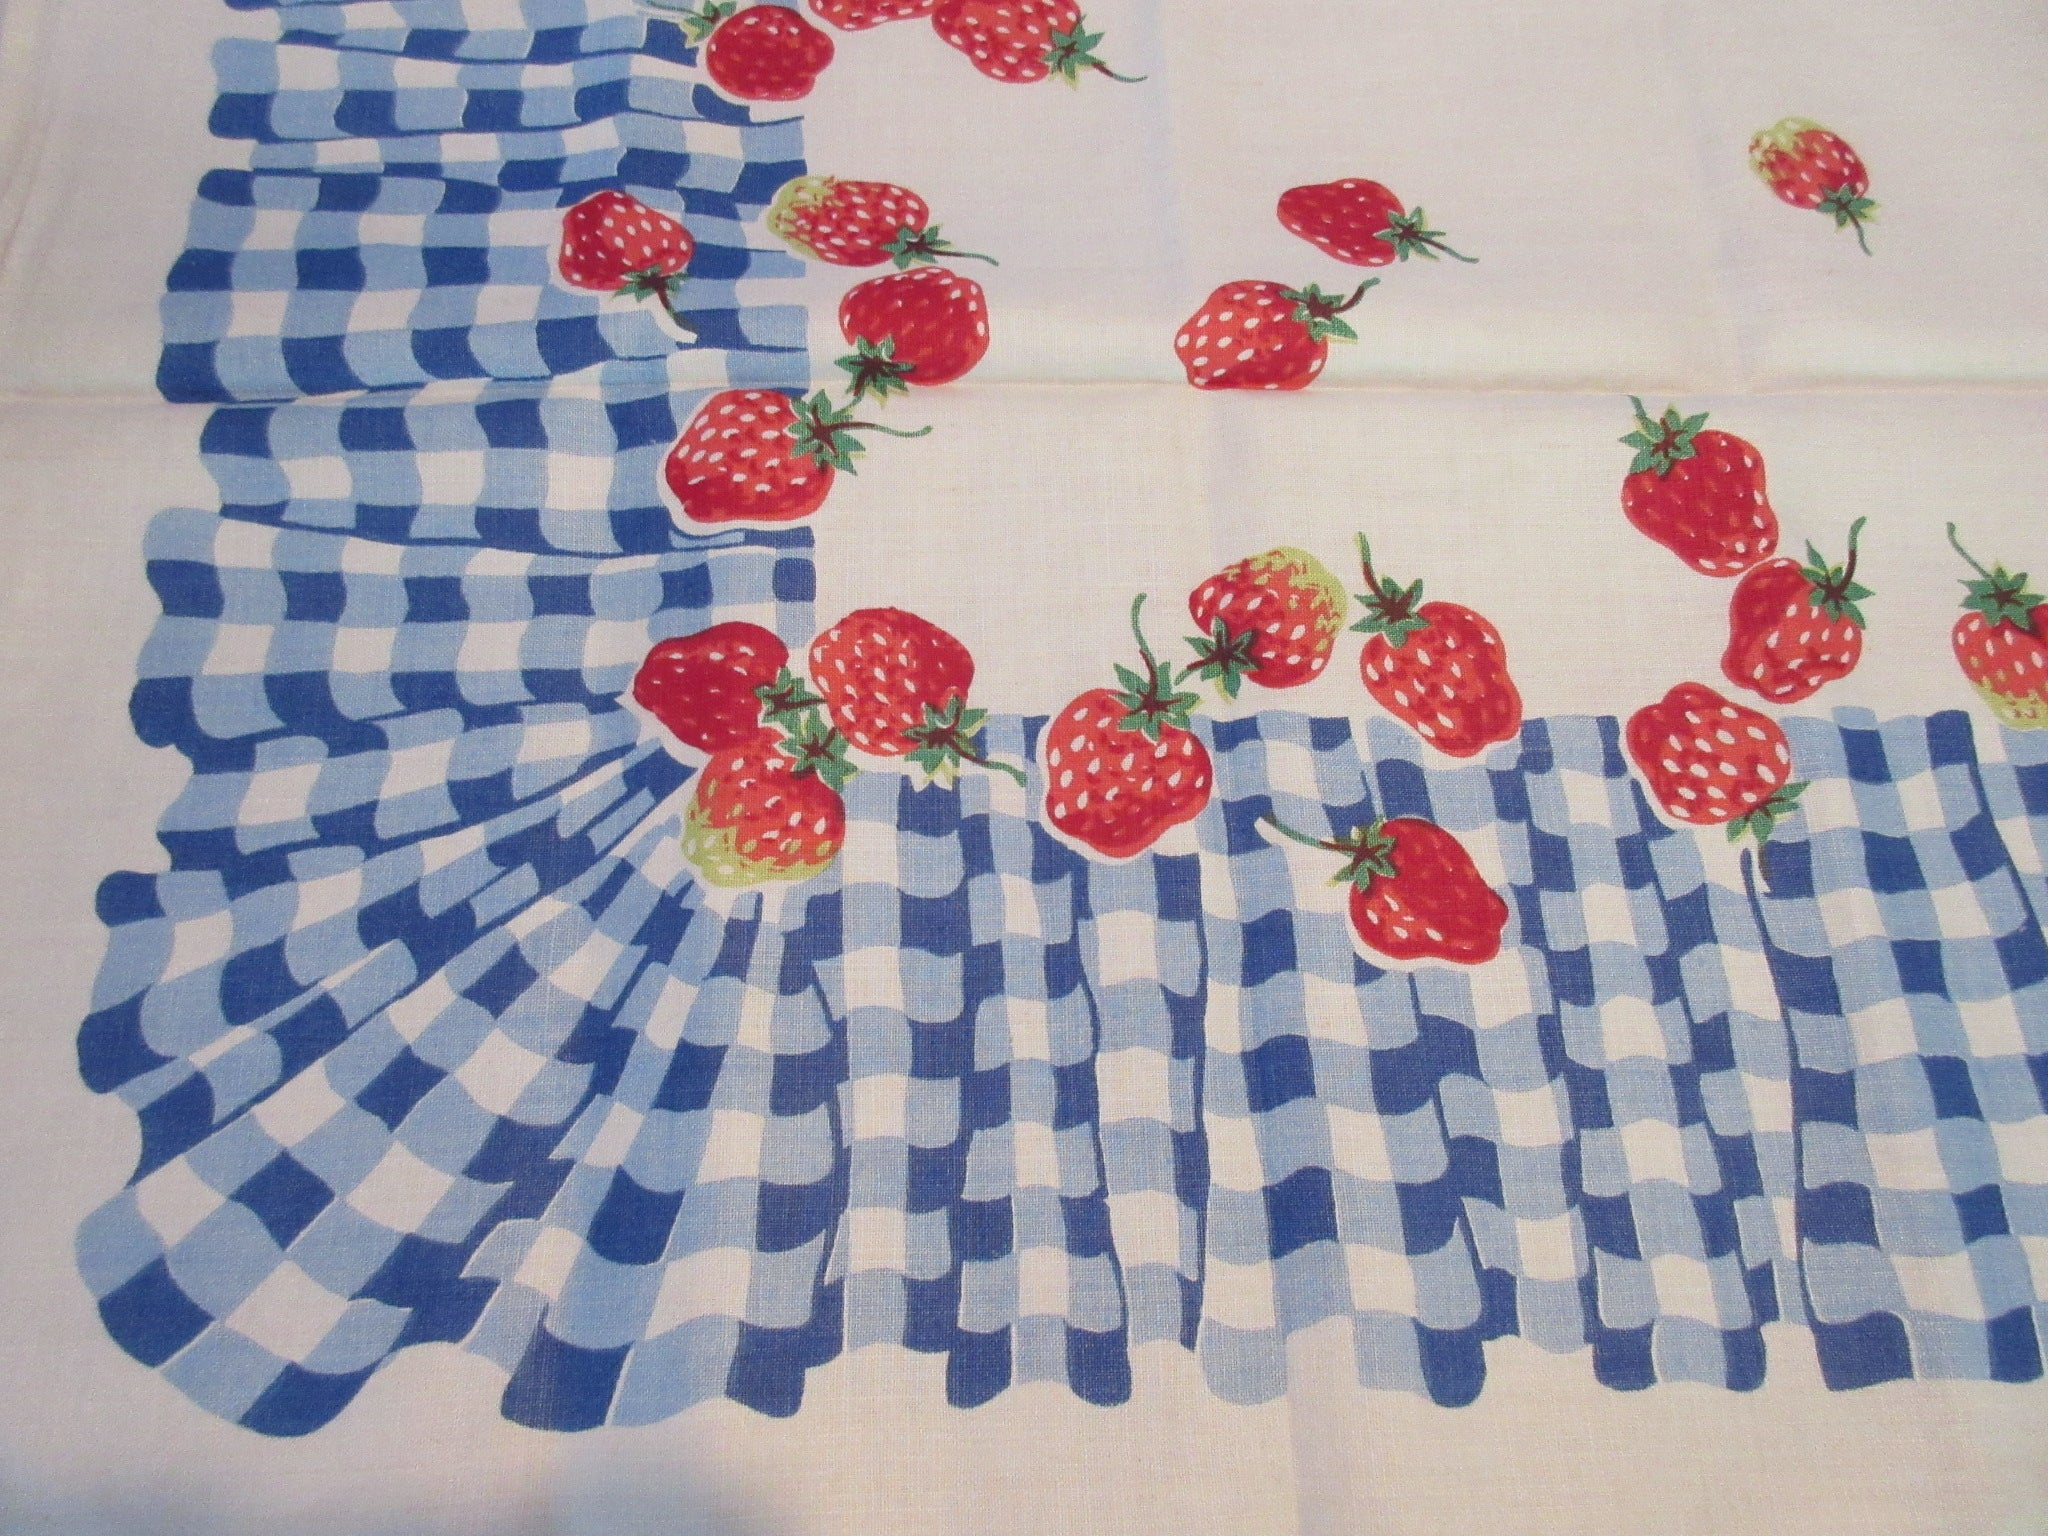 Red Strawberries on Blue Gingham MWT Napkins Fruit Vintage Printed Tablecloth (52 X 50)